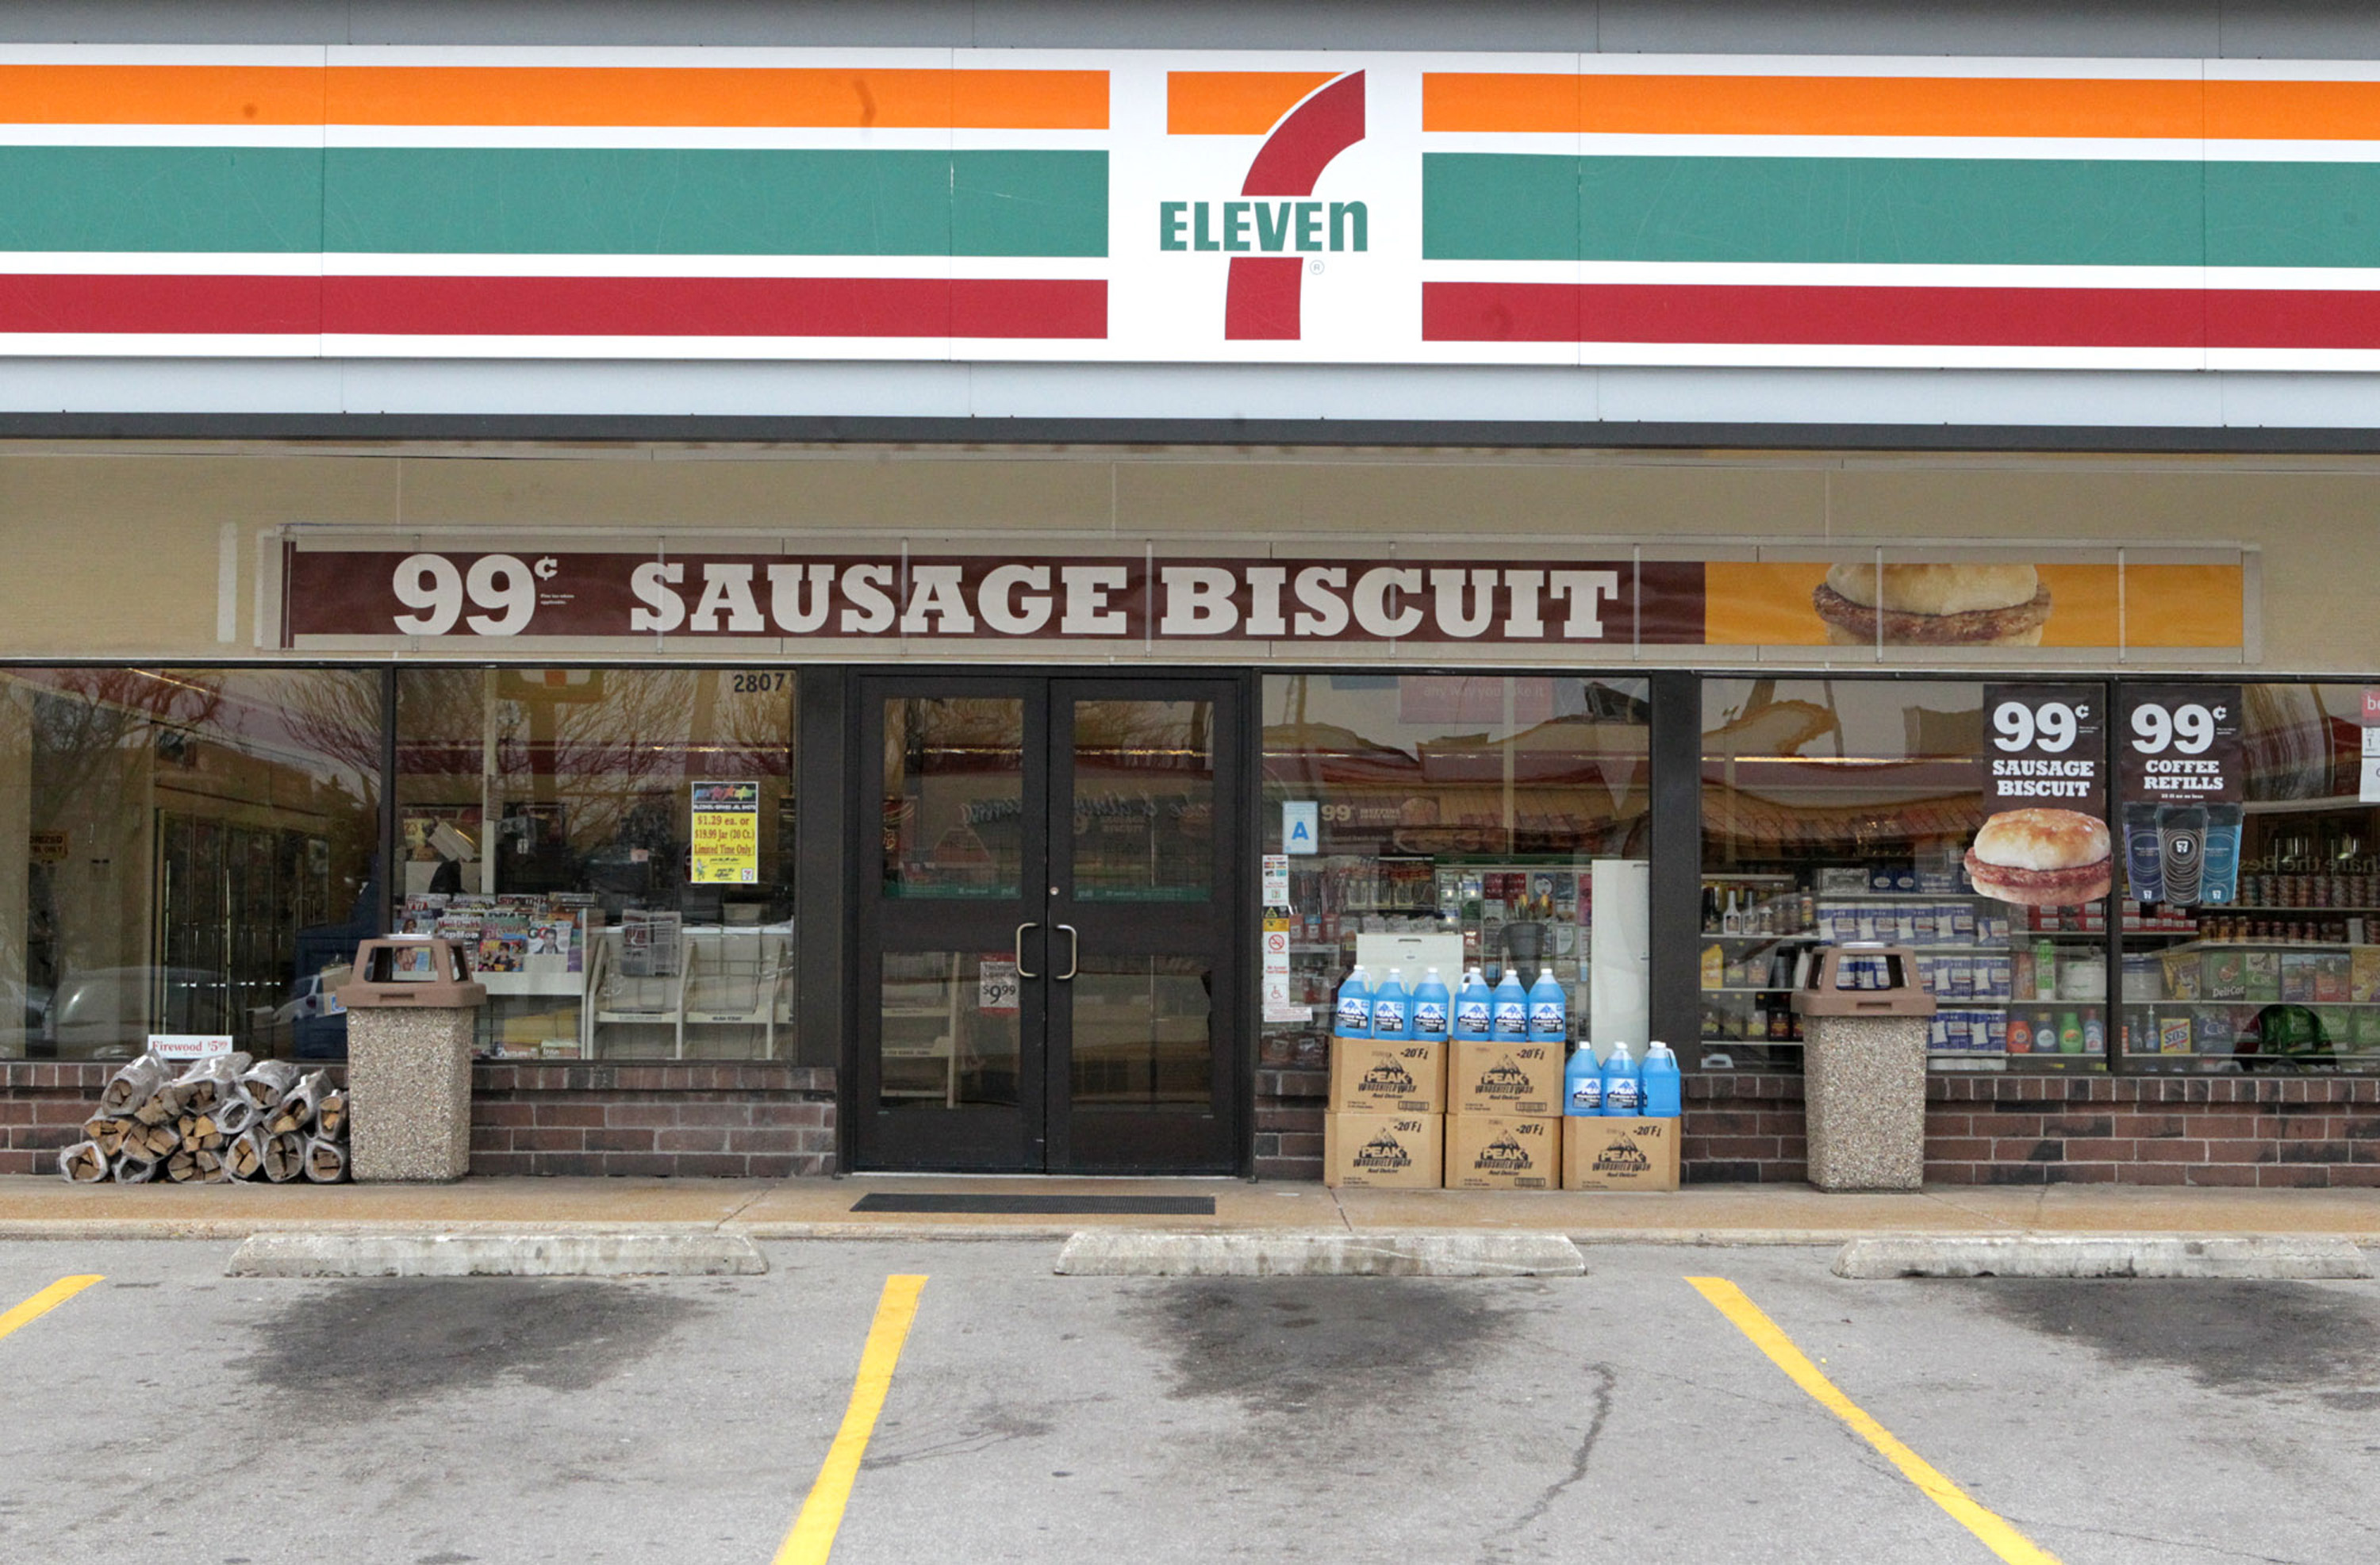 7 Eleven Offering Customers Healthy Fresh Food Choices